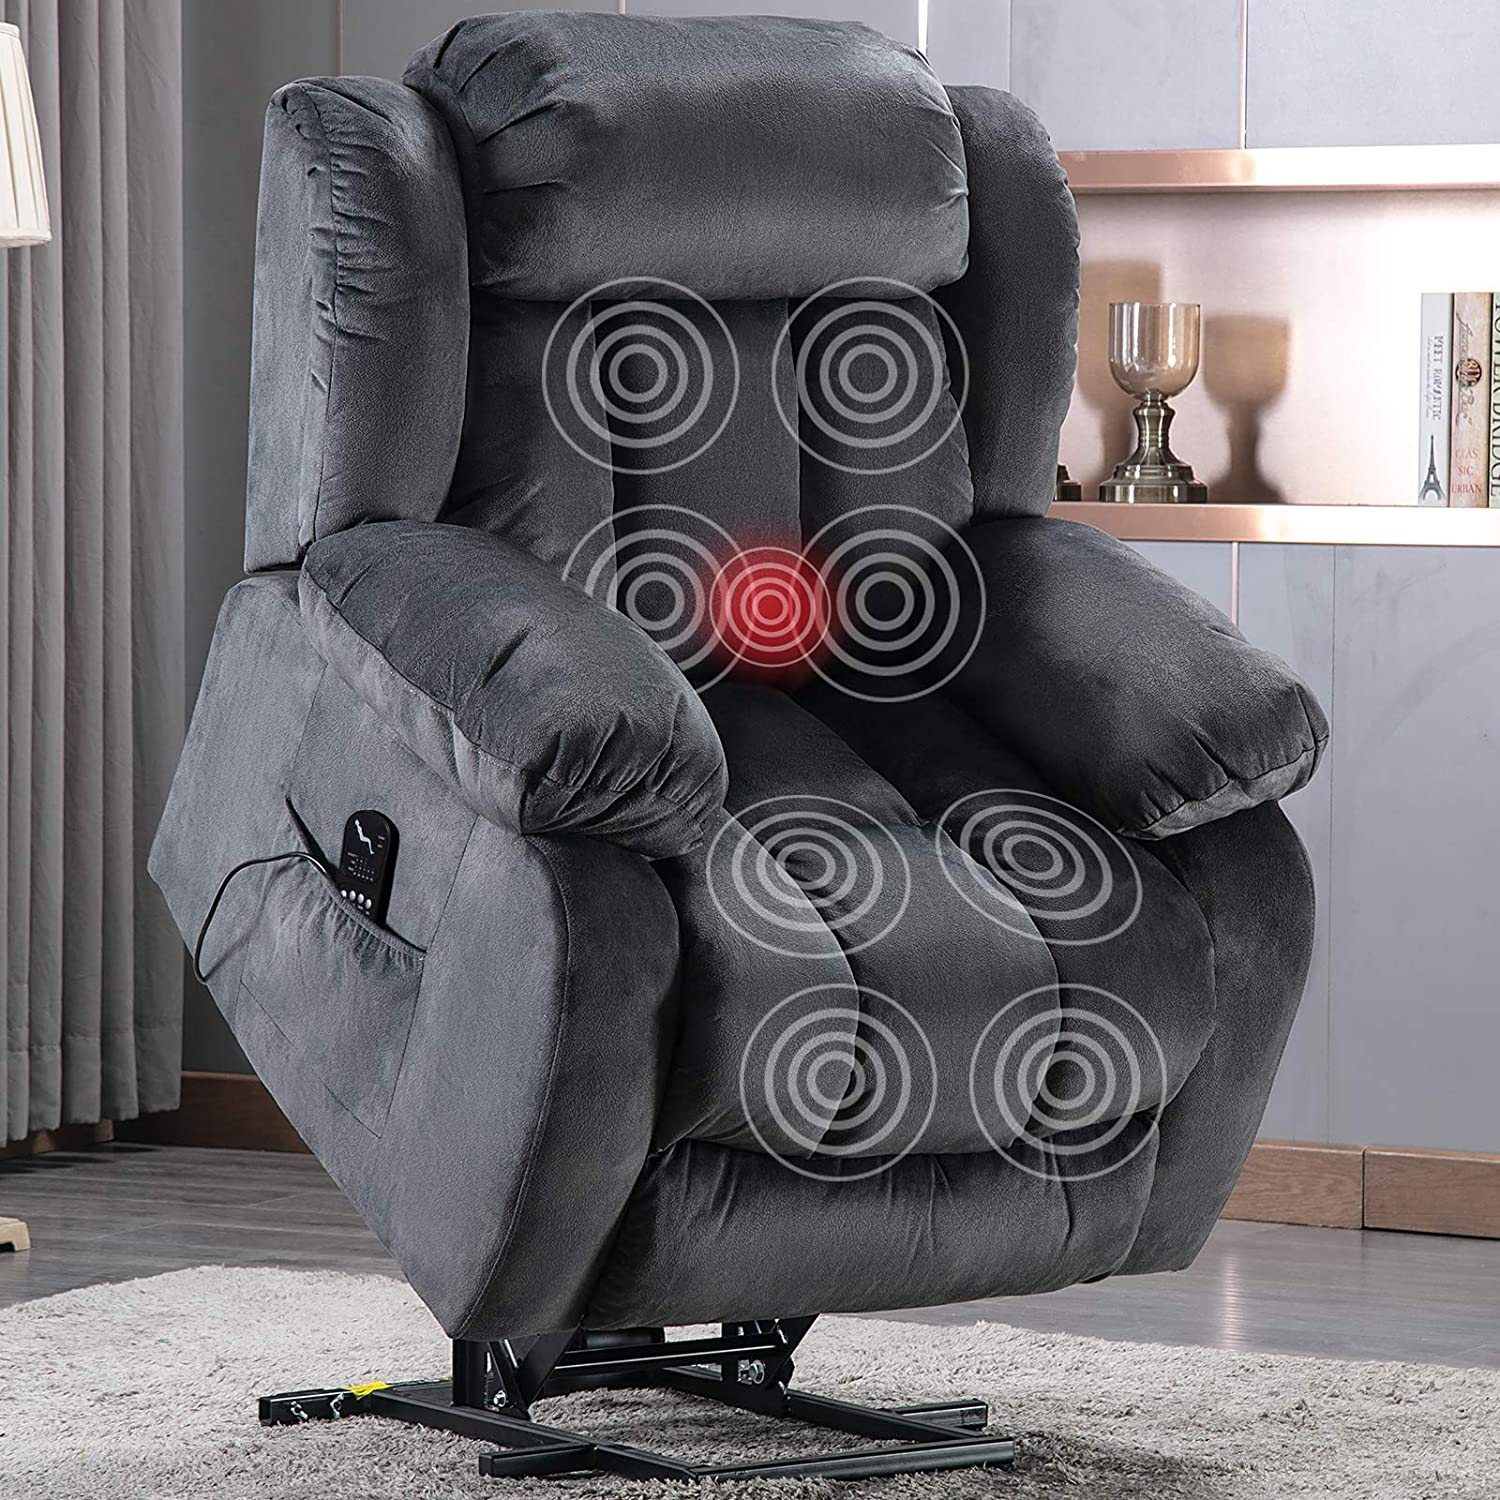 Anj Power Massage Lift Recliner Chair With Heat Vibration For Elderly Heavy Duty And Safety Motion Reclining Mechanism Antiskid Fabric Sofa Contempoary Overstuffed Design Grey Kitchen Dining